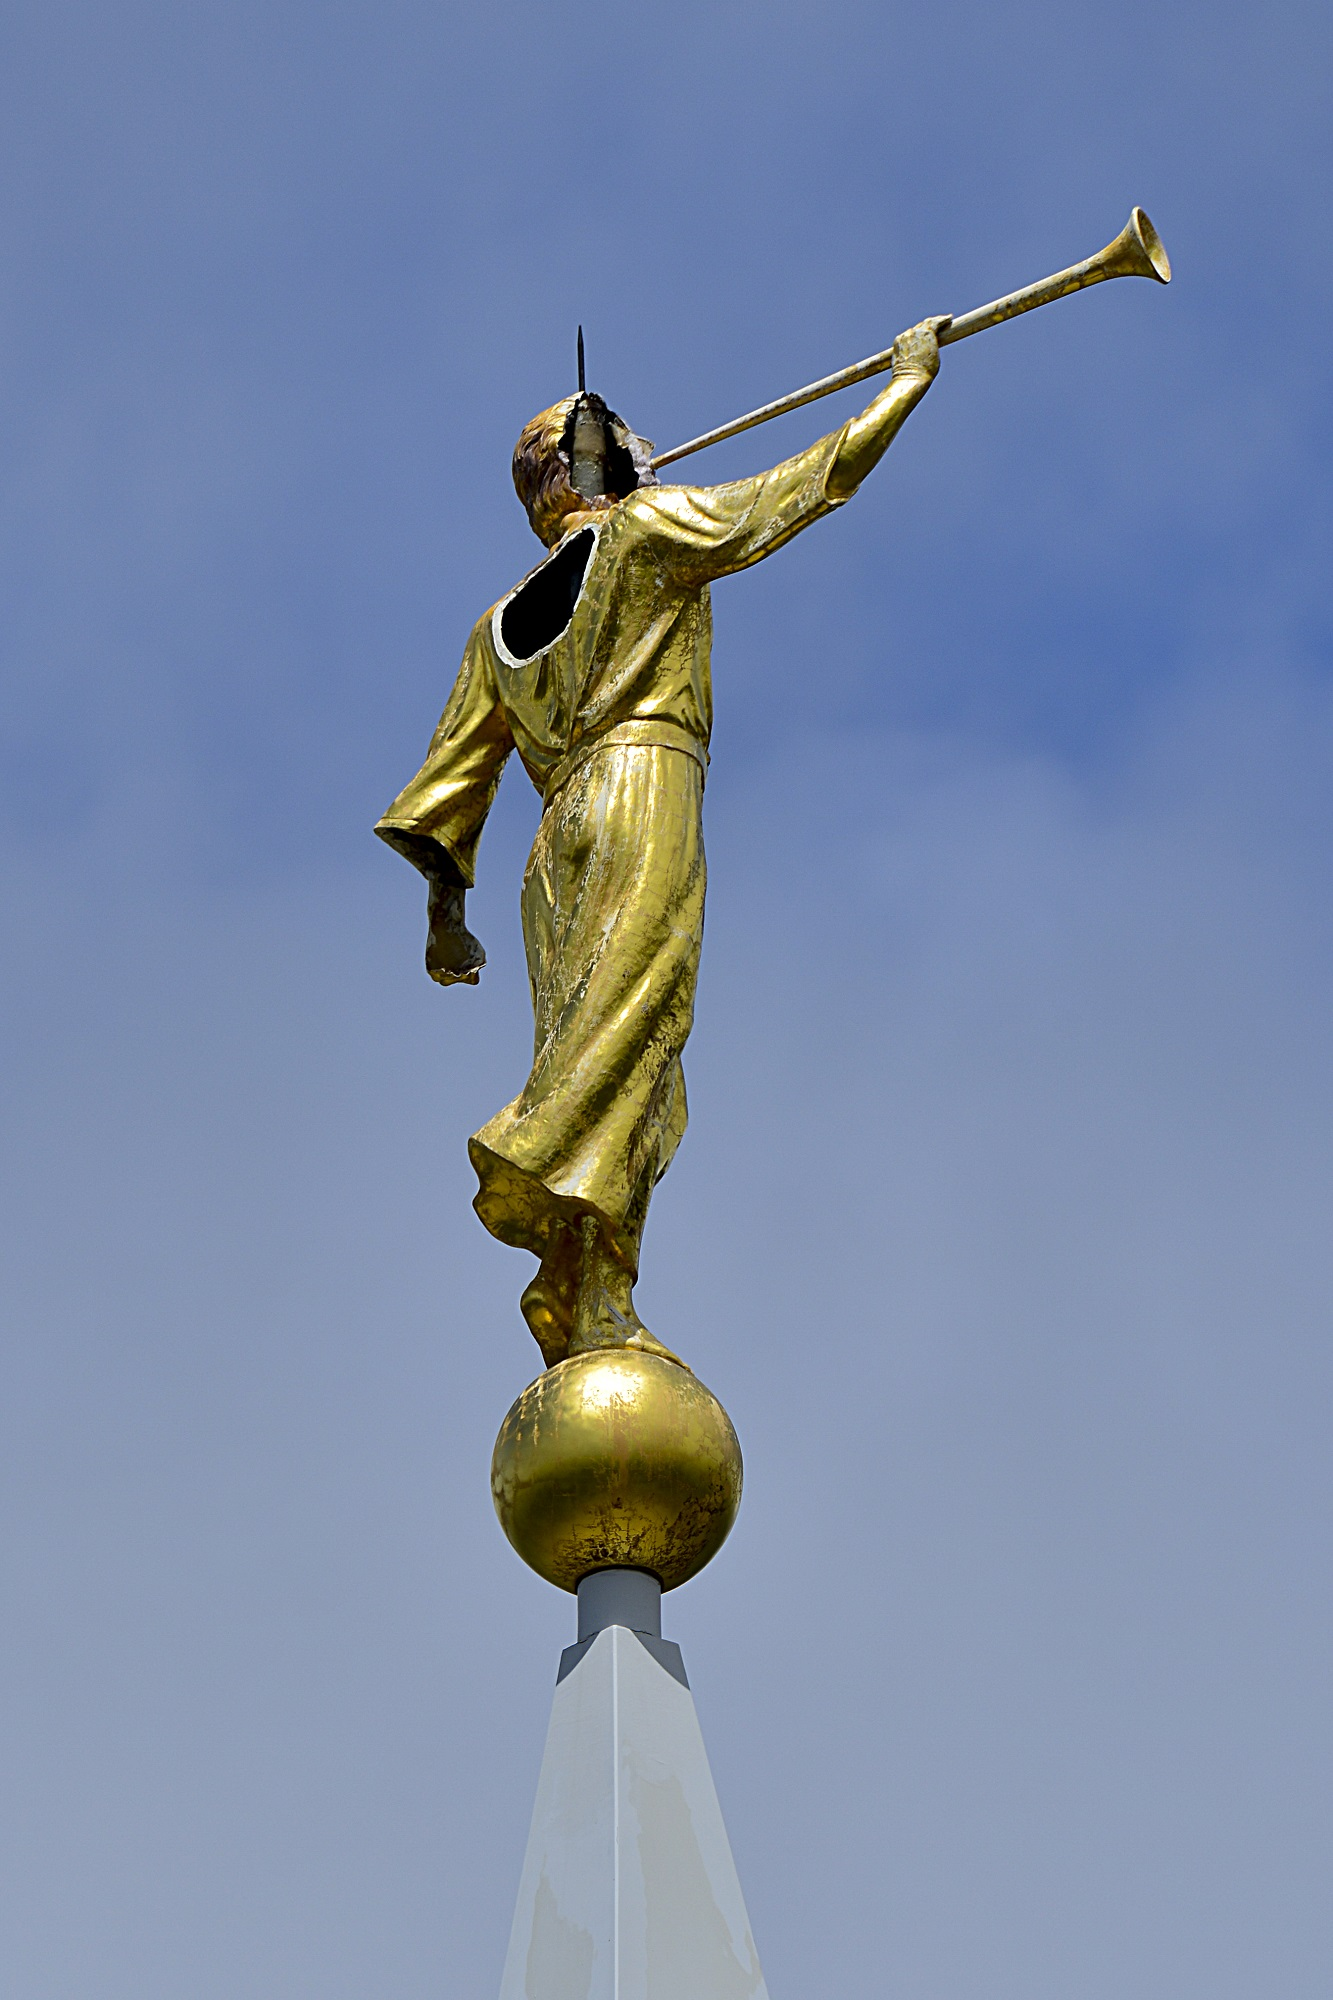 building a drone with Lightning Strike Damages Angel Moroni Statue on Sintra Portugal likewise Sony World Photography Awards 2018 as well P441716 as well Mitla Oaxaca Mexico in addition Steamroller.